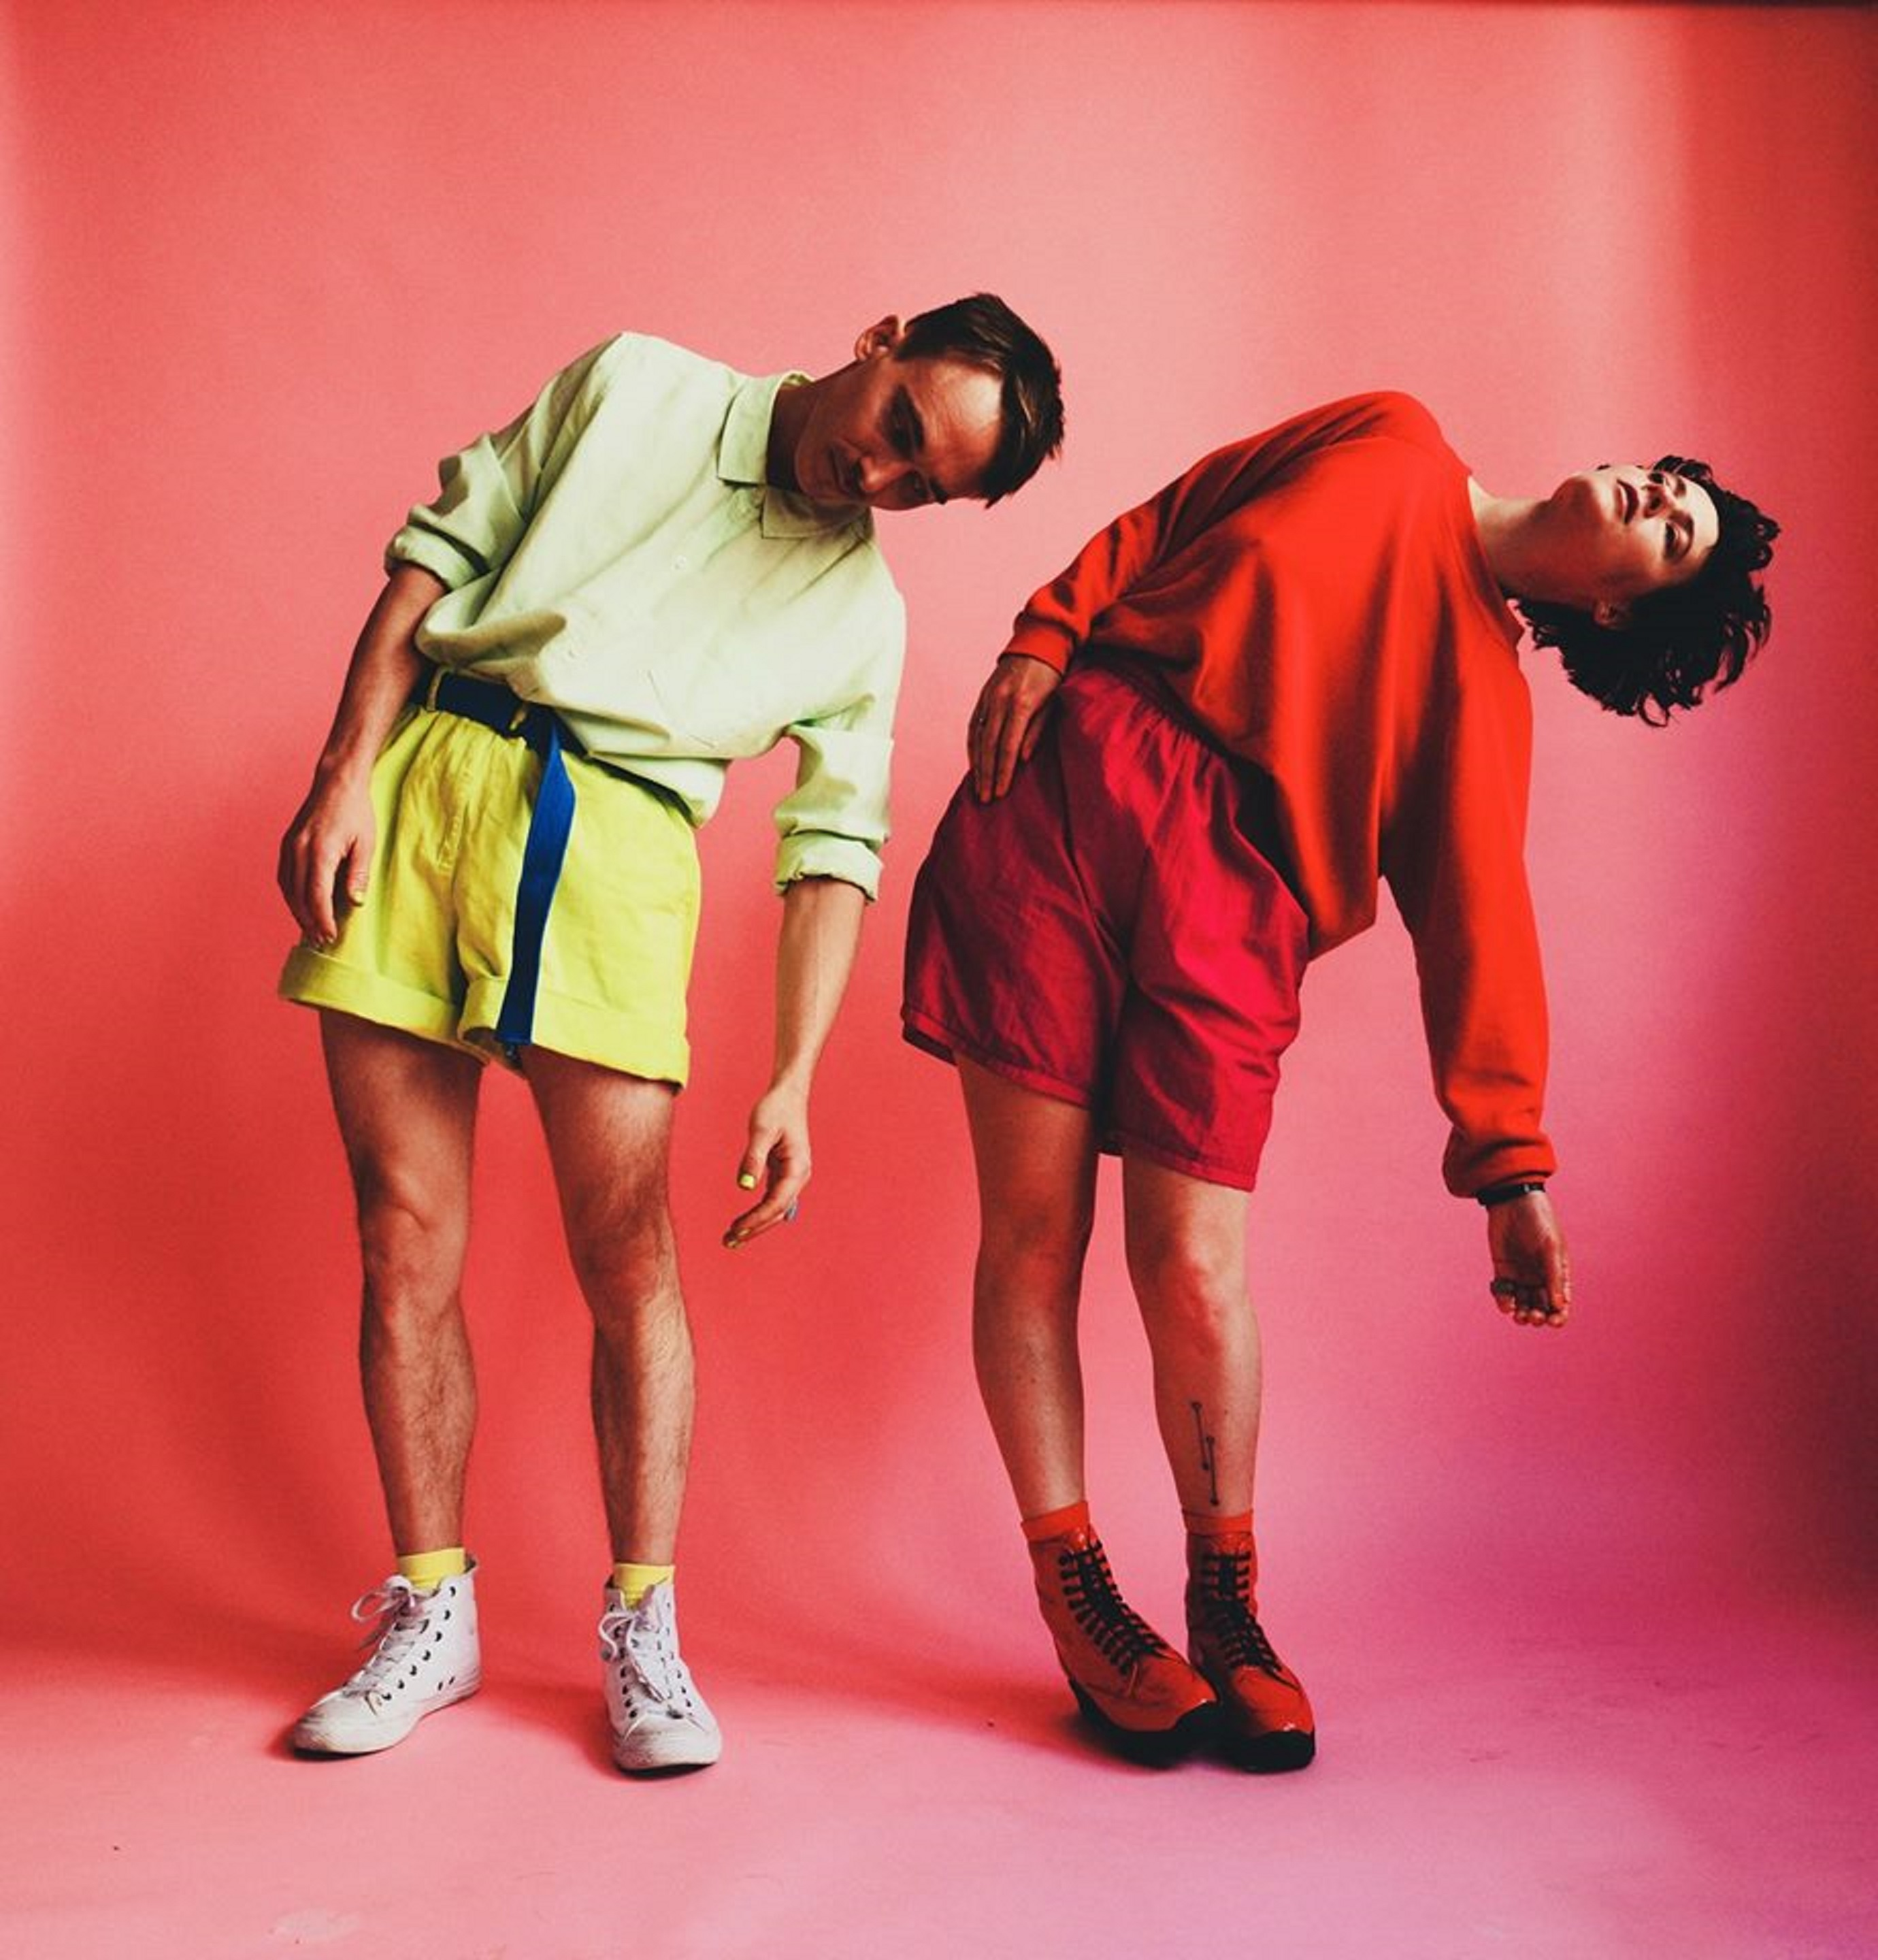 Rubblebucket to play The Fox Theatre on March 21st